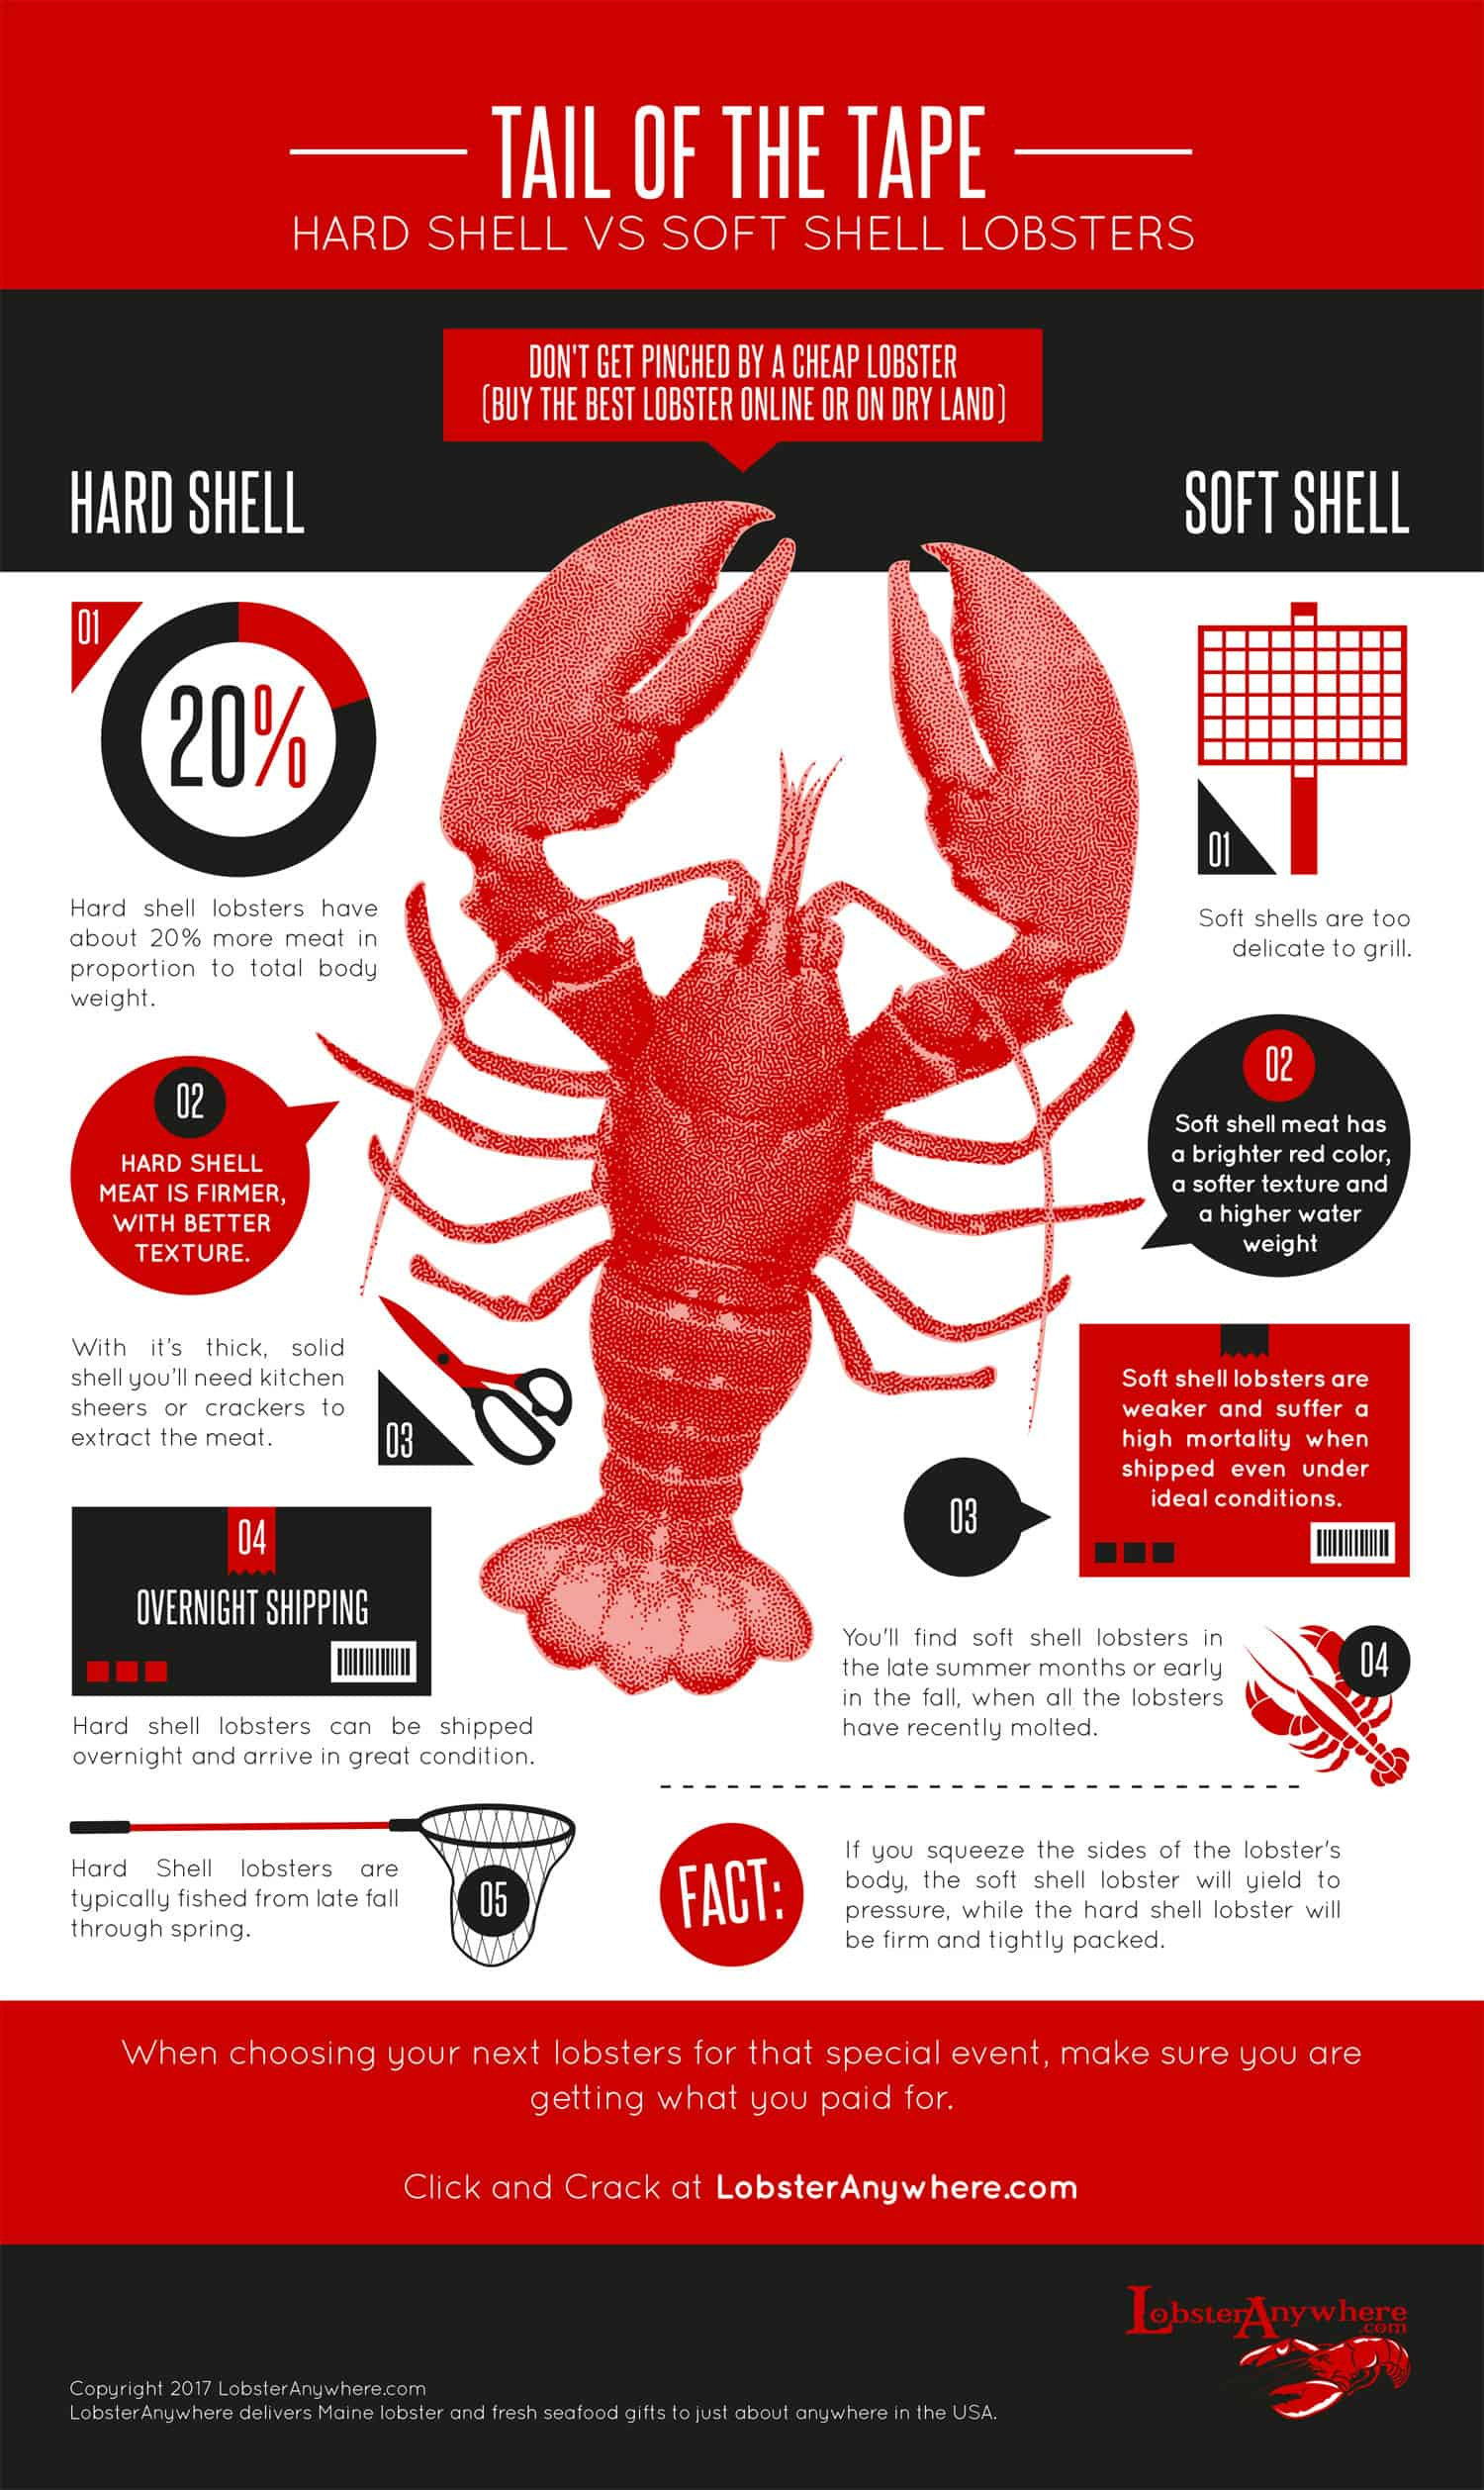 Which is Better: Hard Shell or Soft Shell Lobster